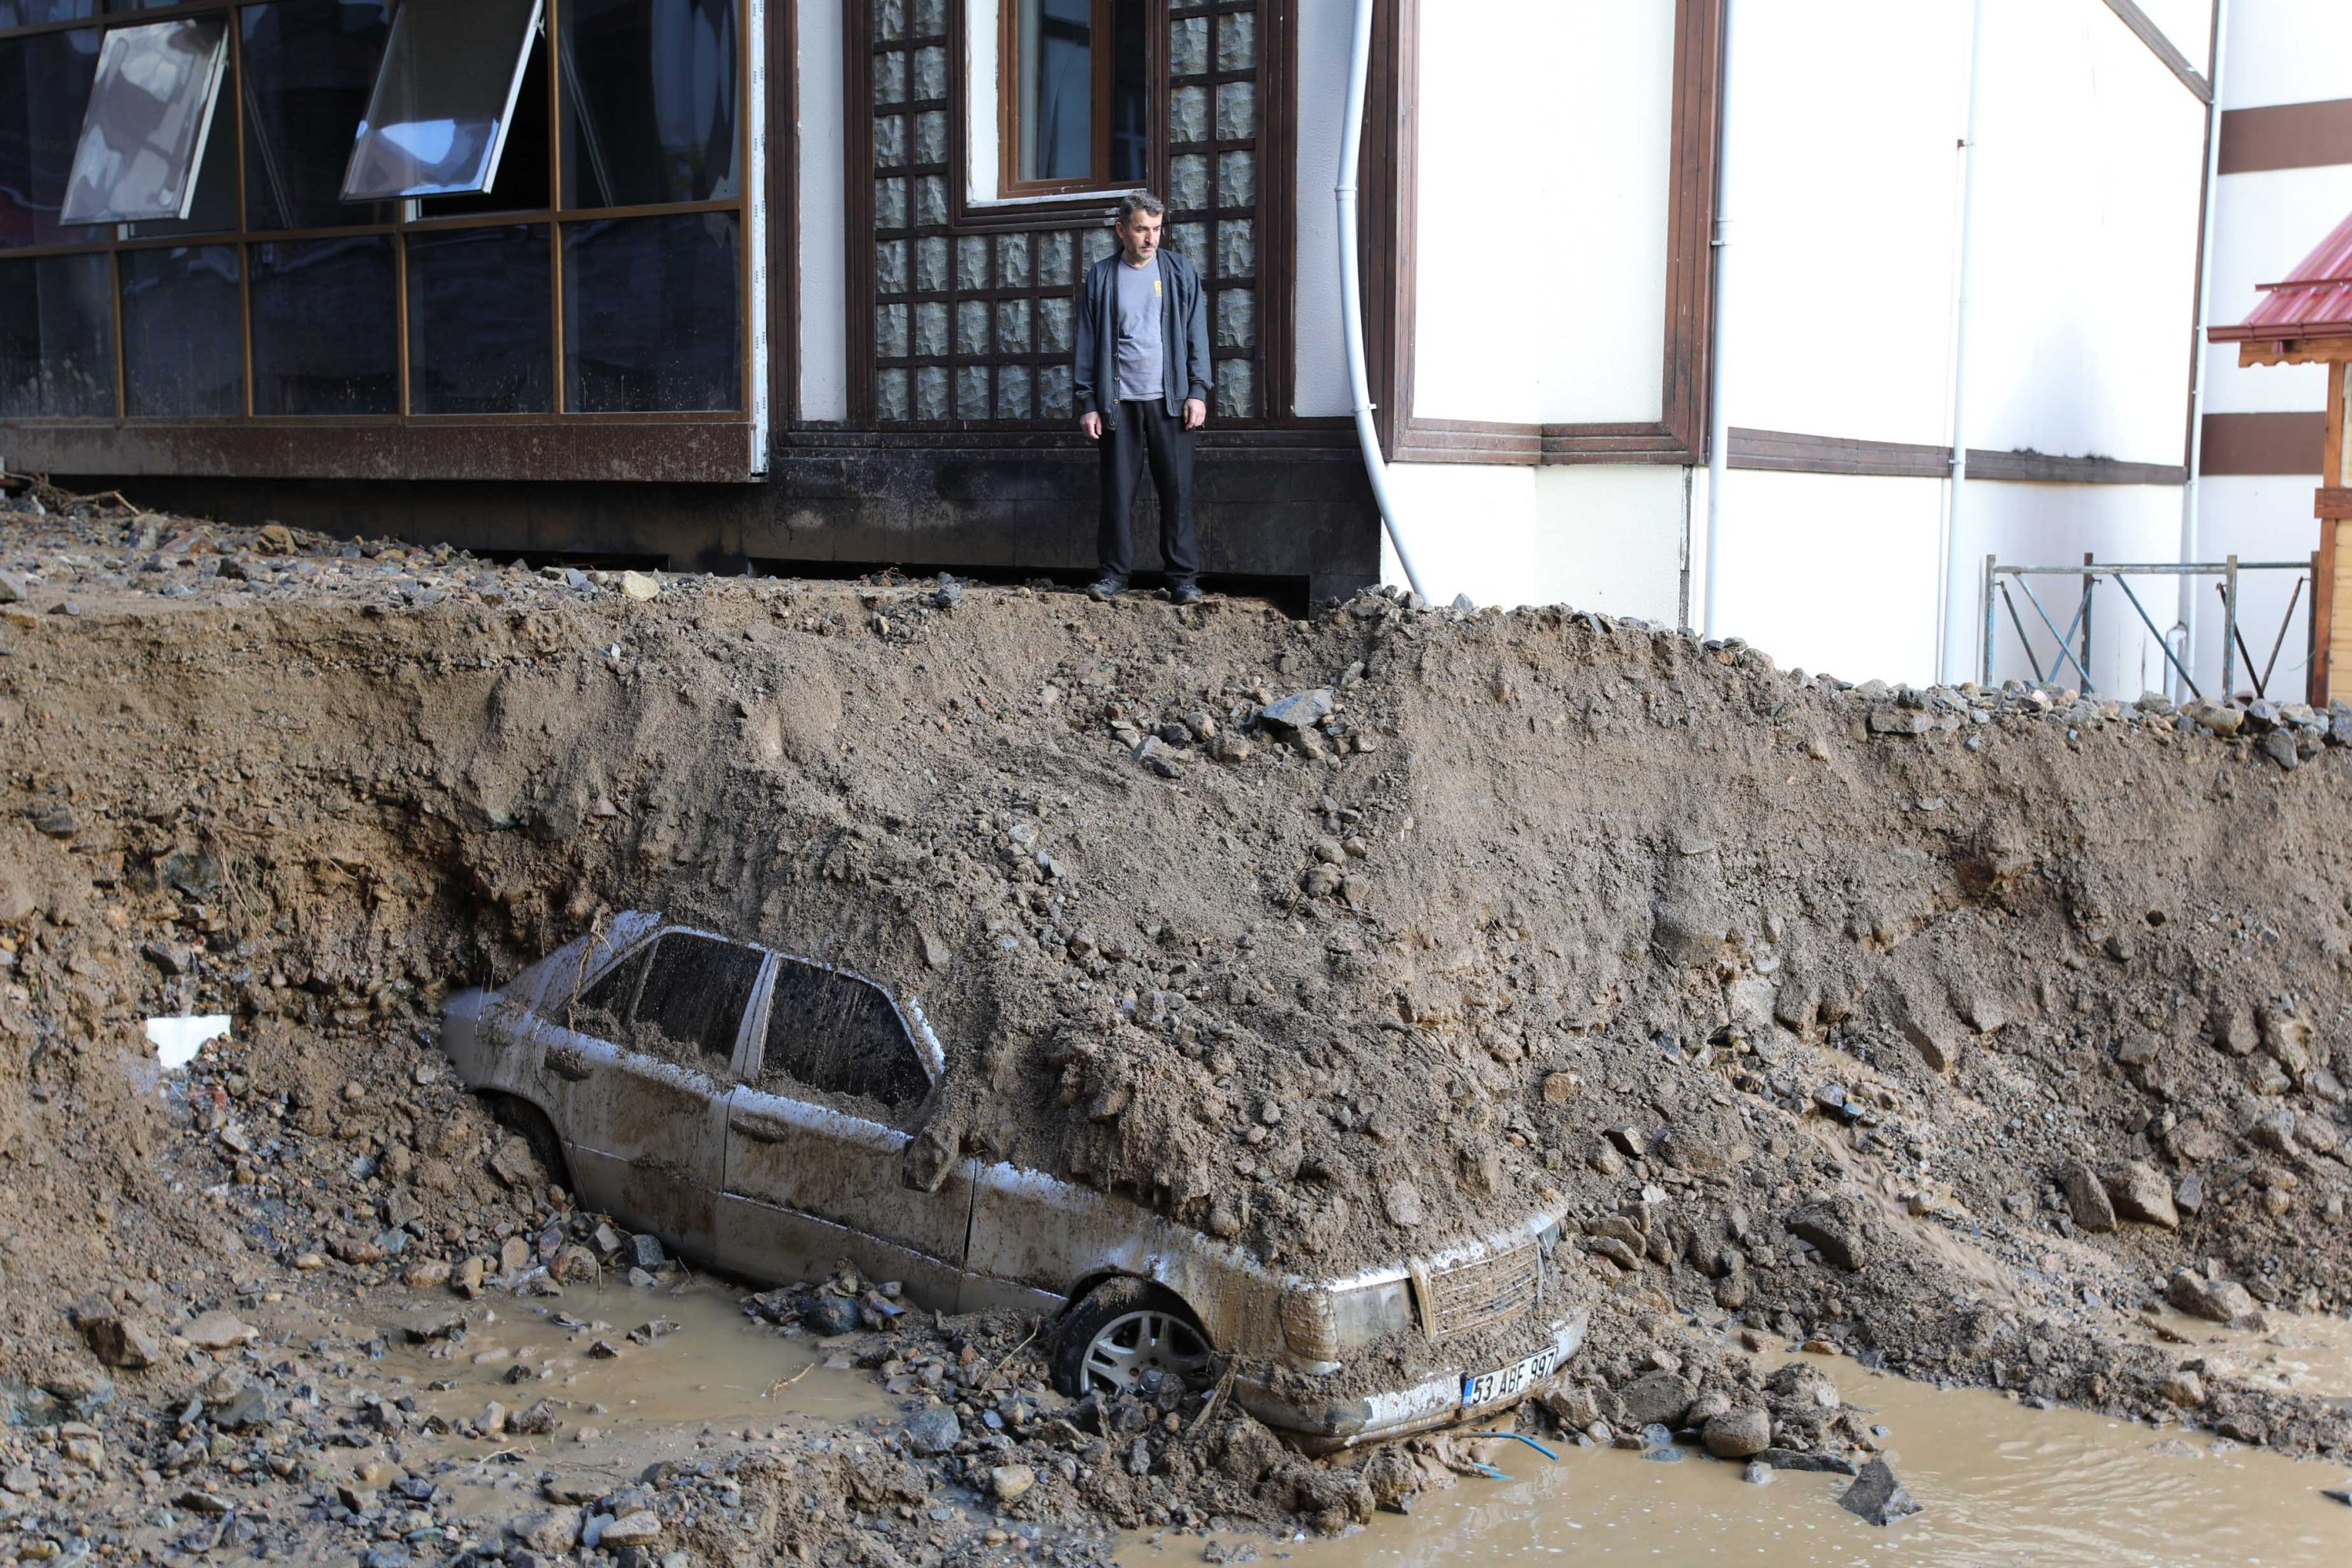 A car buried under soil in Güneysu district, in Rize, northern Turkey, July 15, 2021. (DHA Photo)